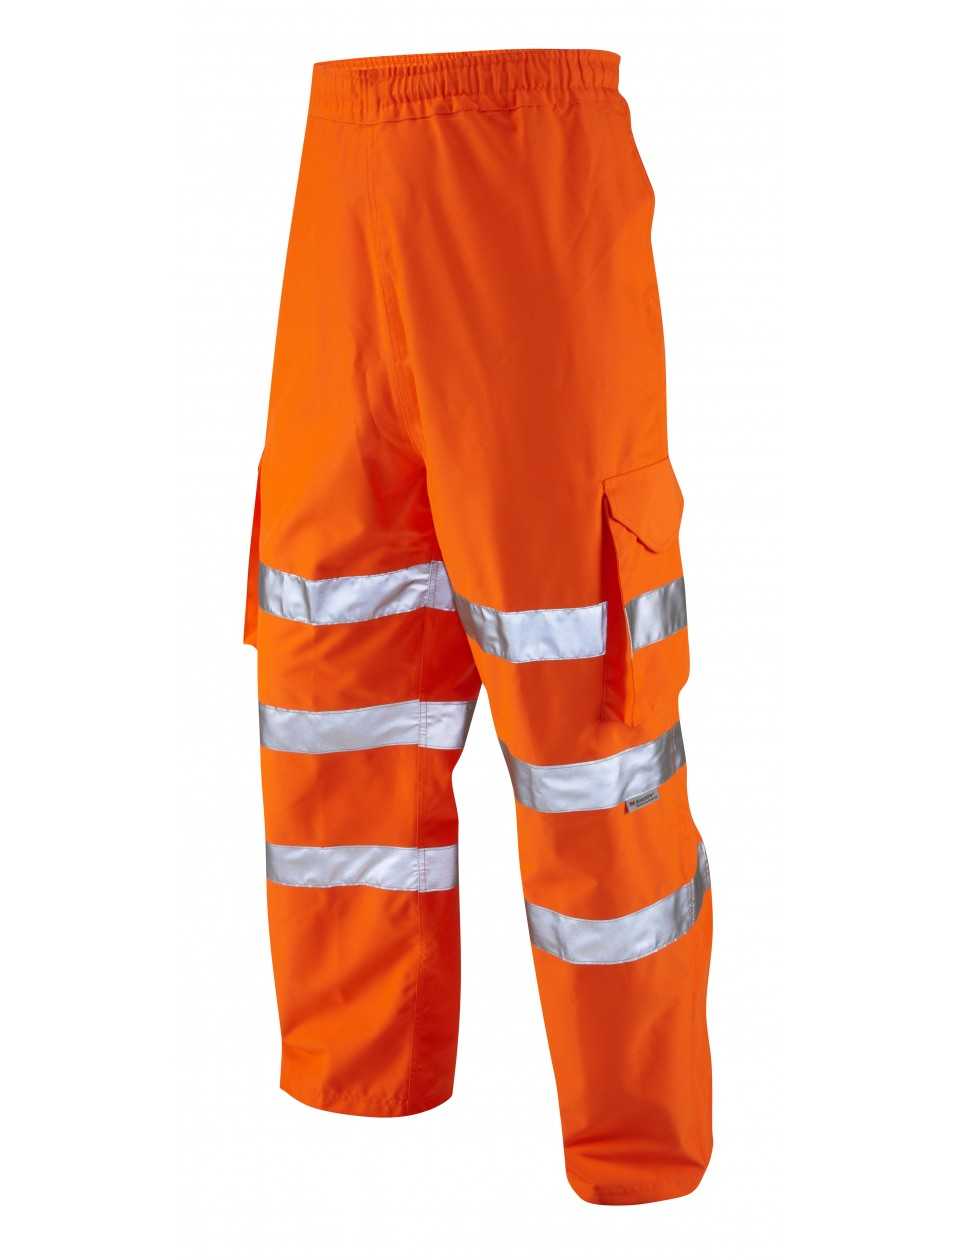 Leo Instow Orange Waterproof Overtrousers L02-O High Visibility